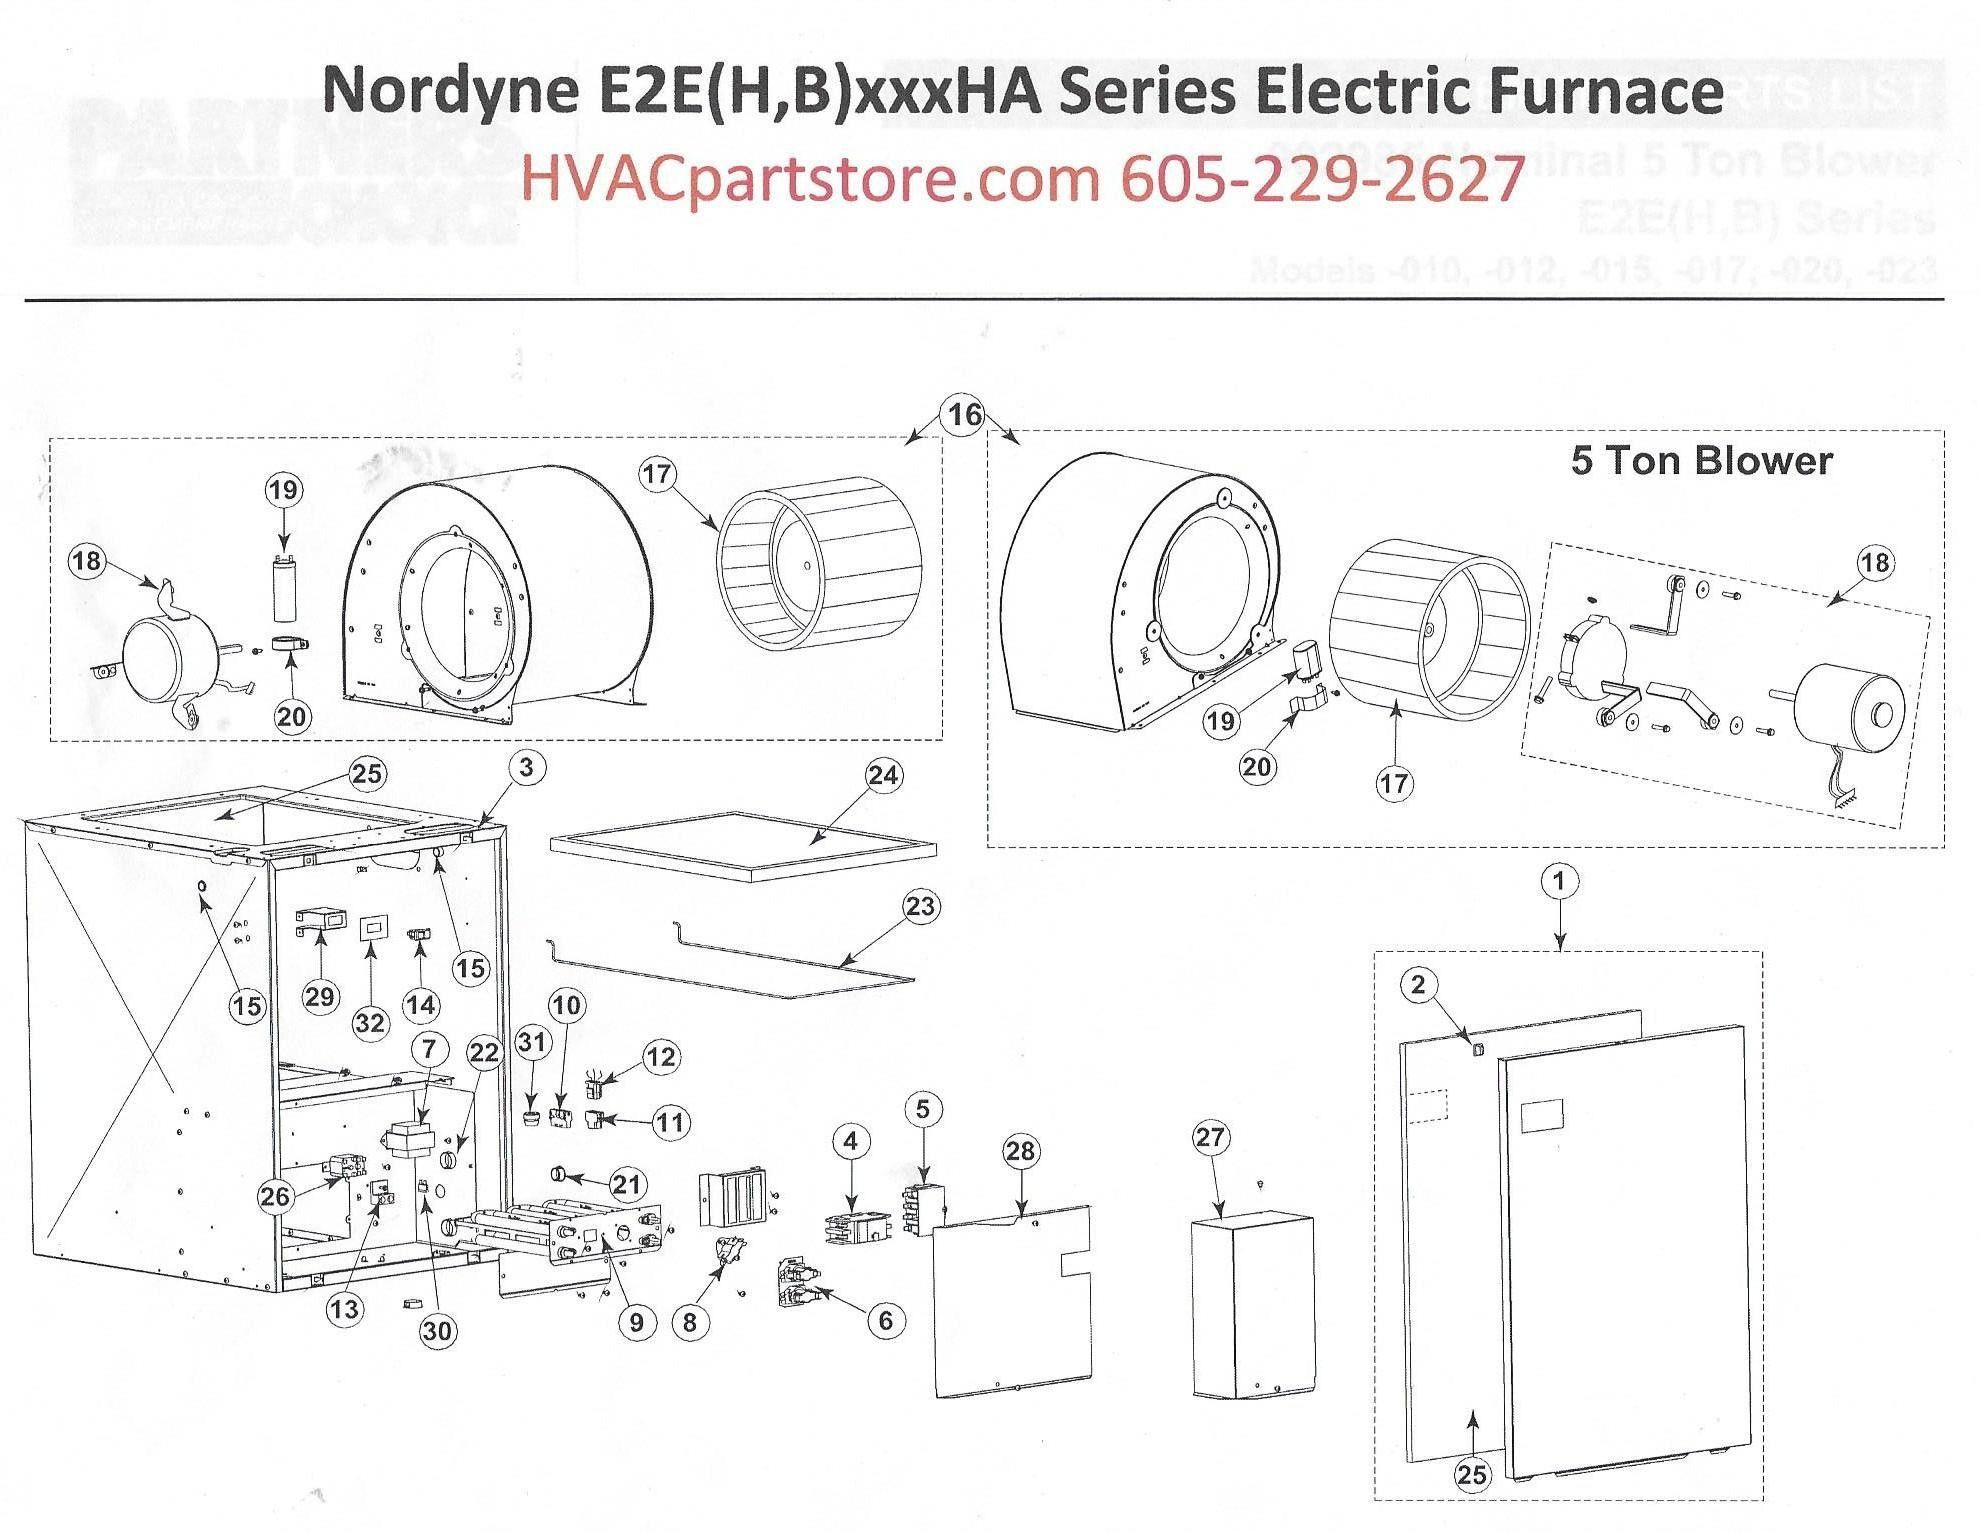 Nordyne Electric Furnace Wiring Diagram from i.pinimg.com